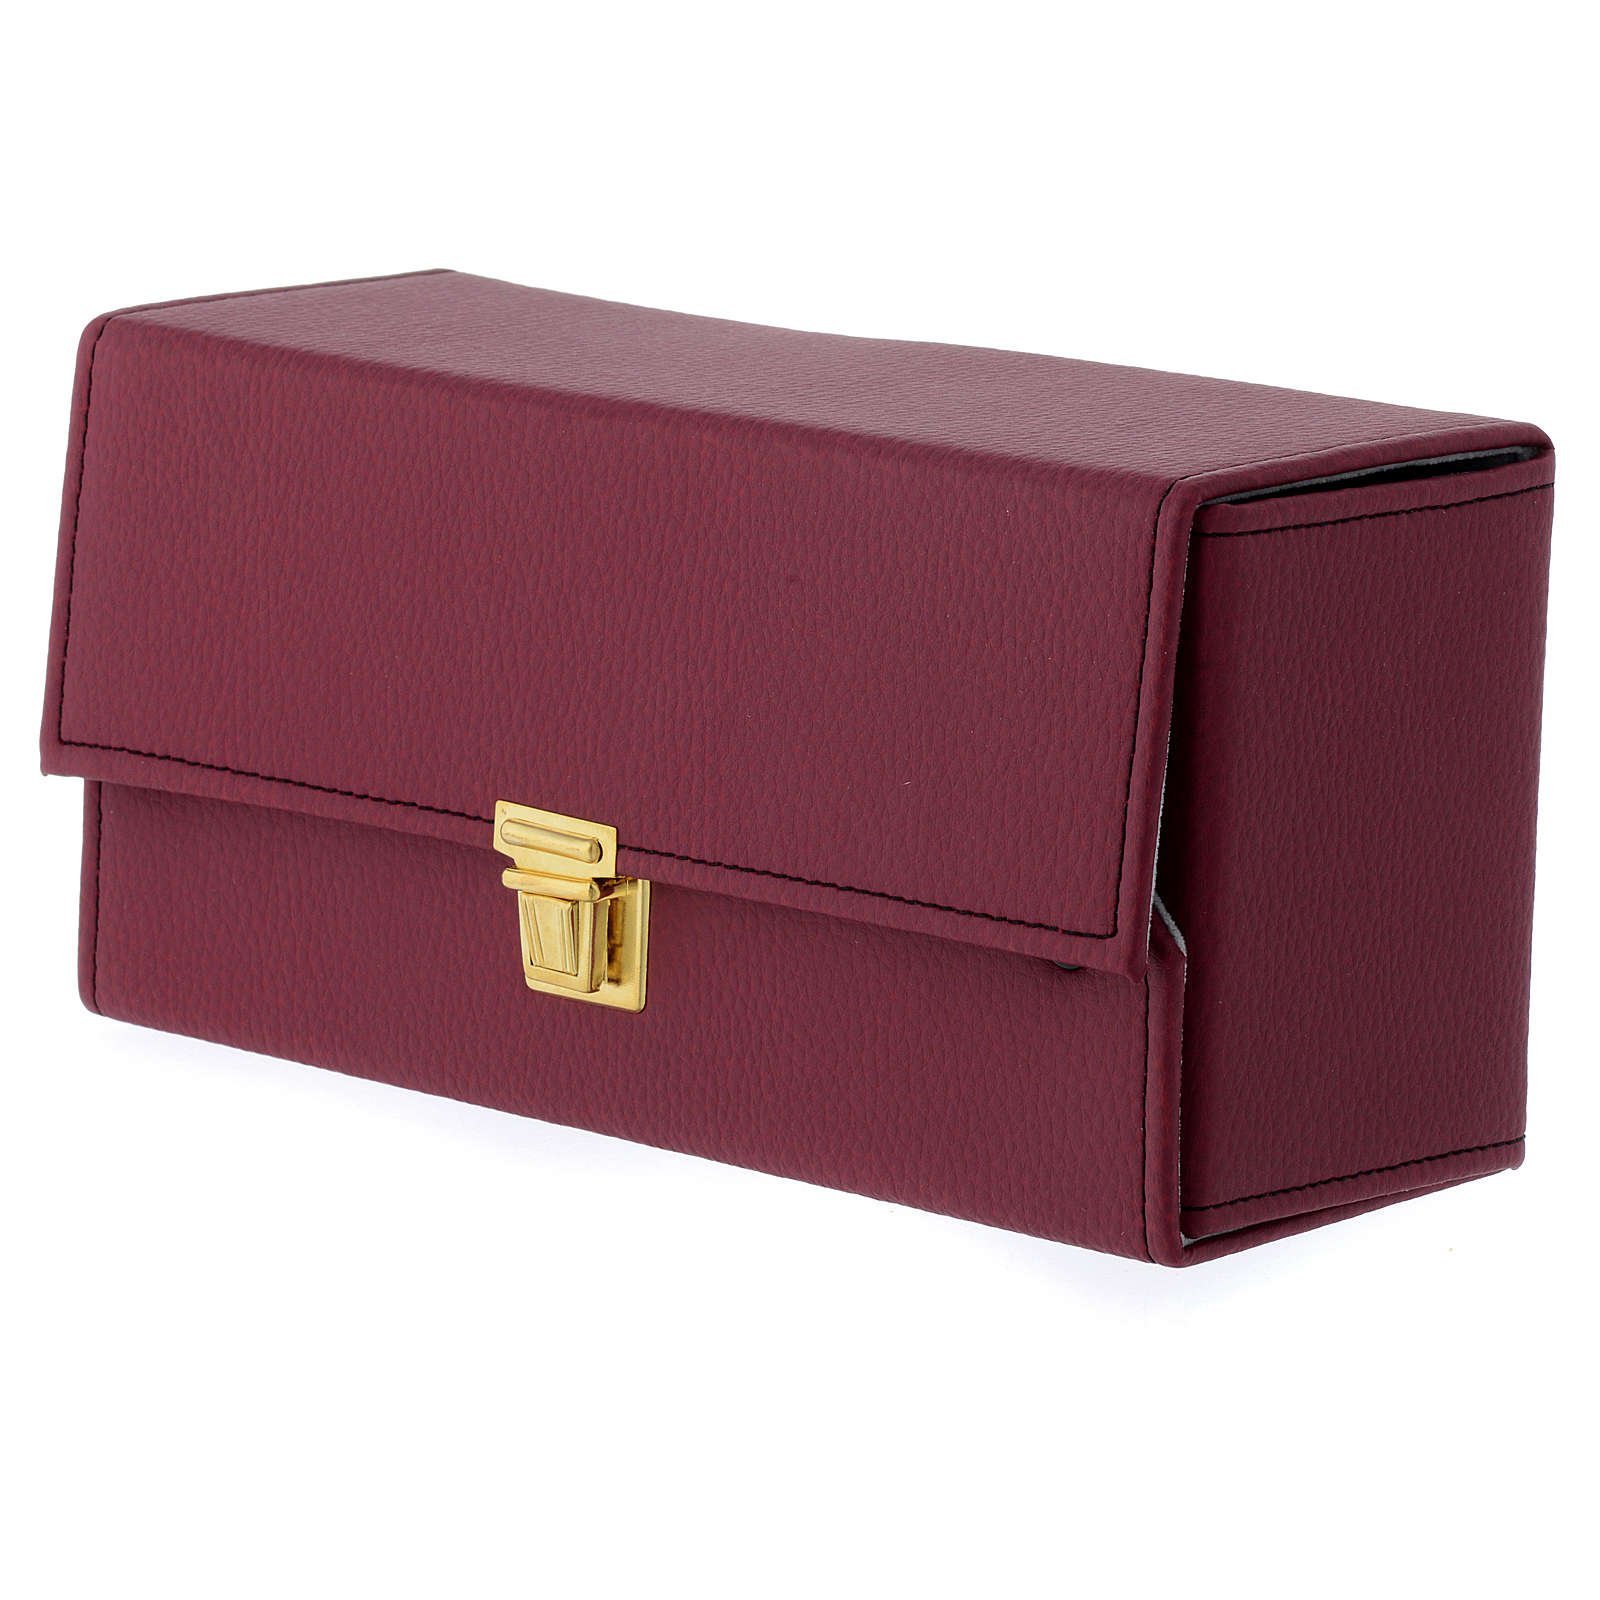 Holy oil stock set with burgundy case and tray 3